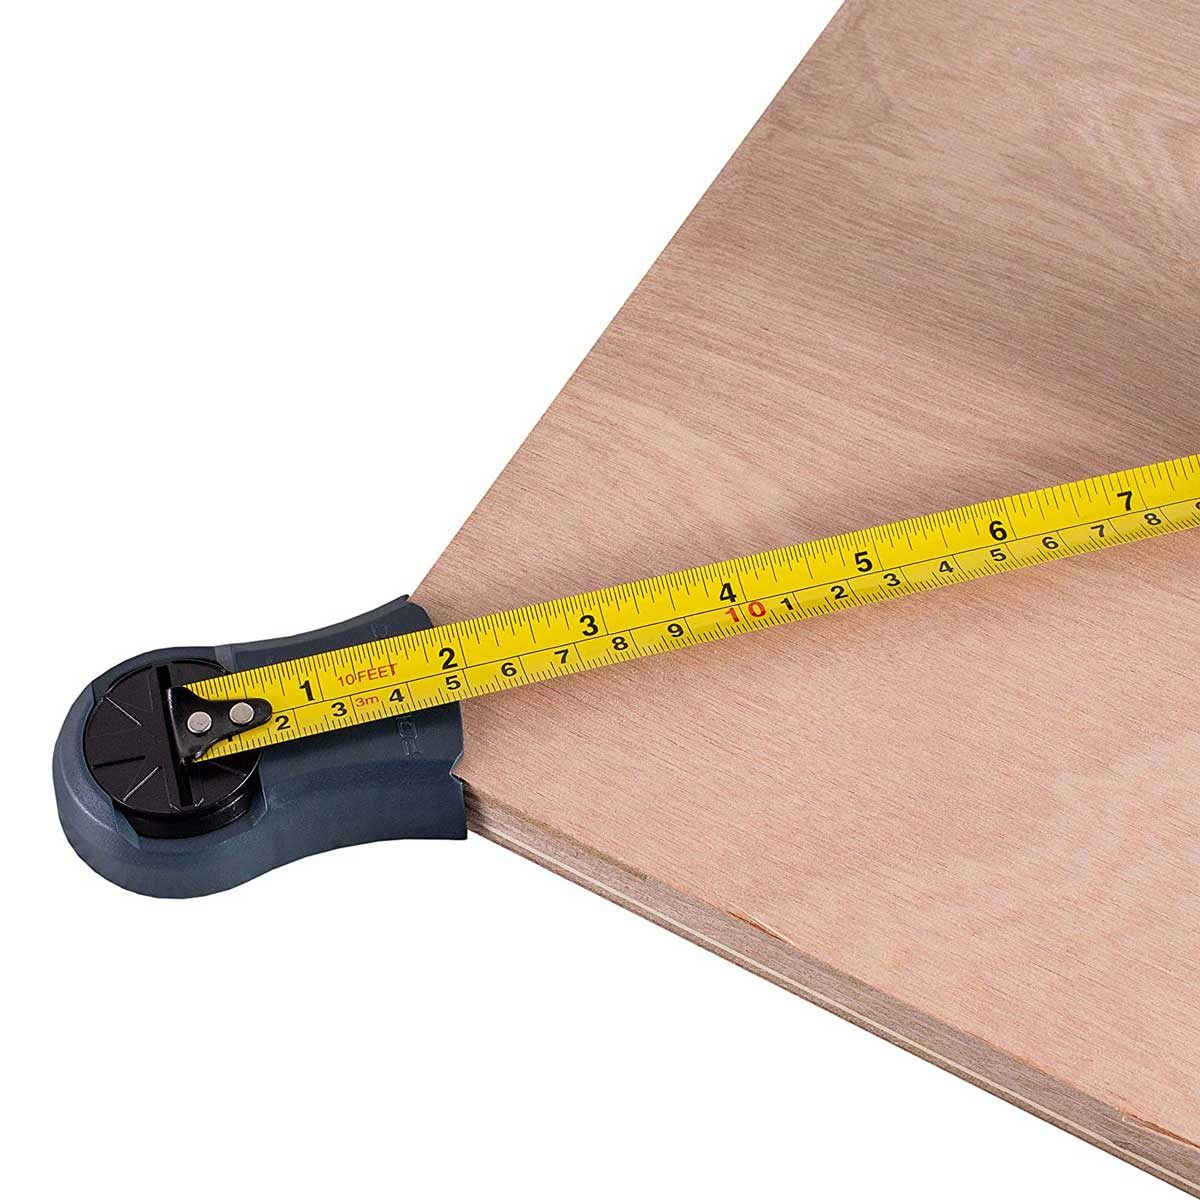 Square check tape measure tool